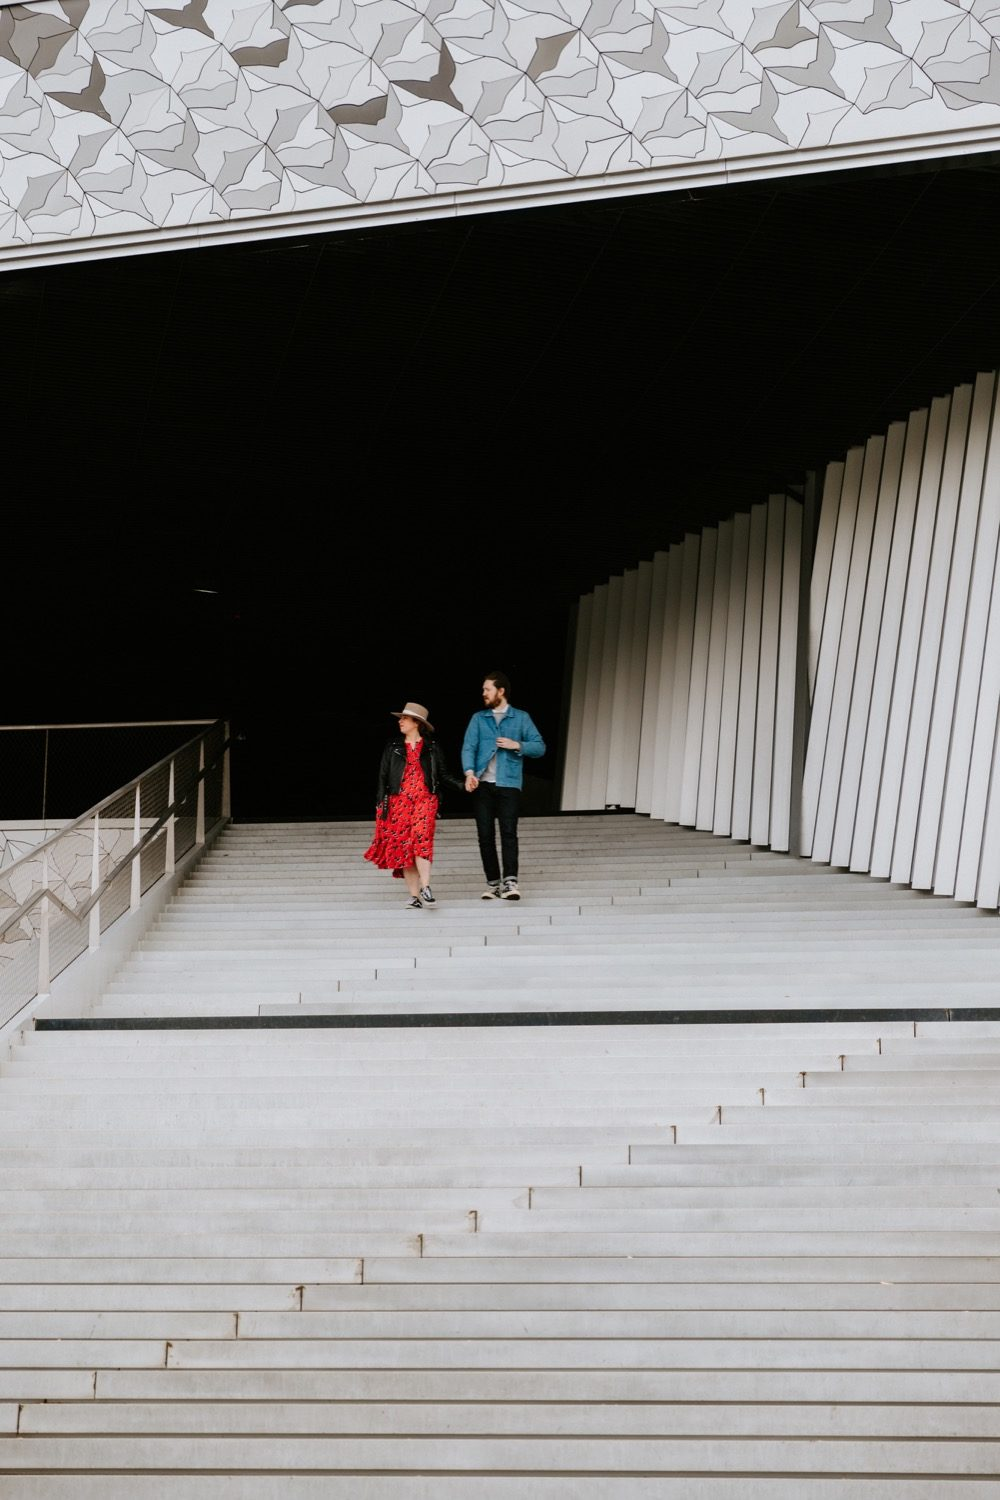 séance couple à paris,philharmonie Love Session à Paris - Julia & Max 34 - Blog Mariage